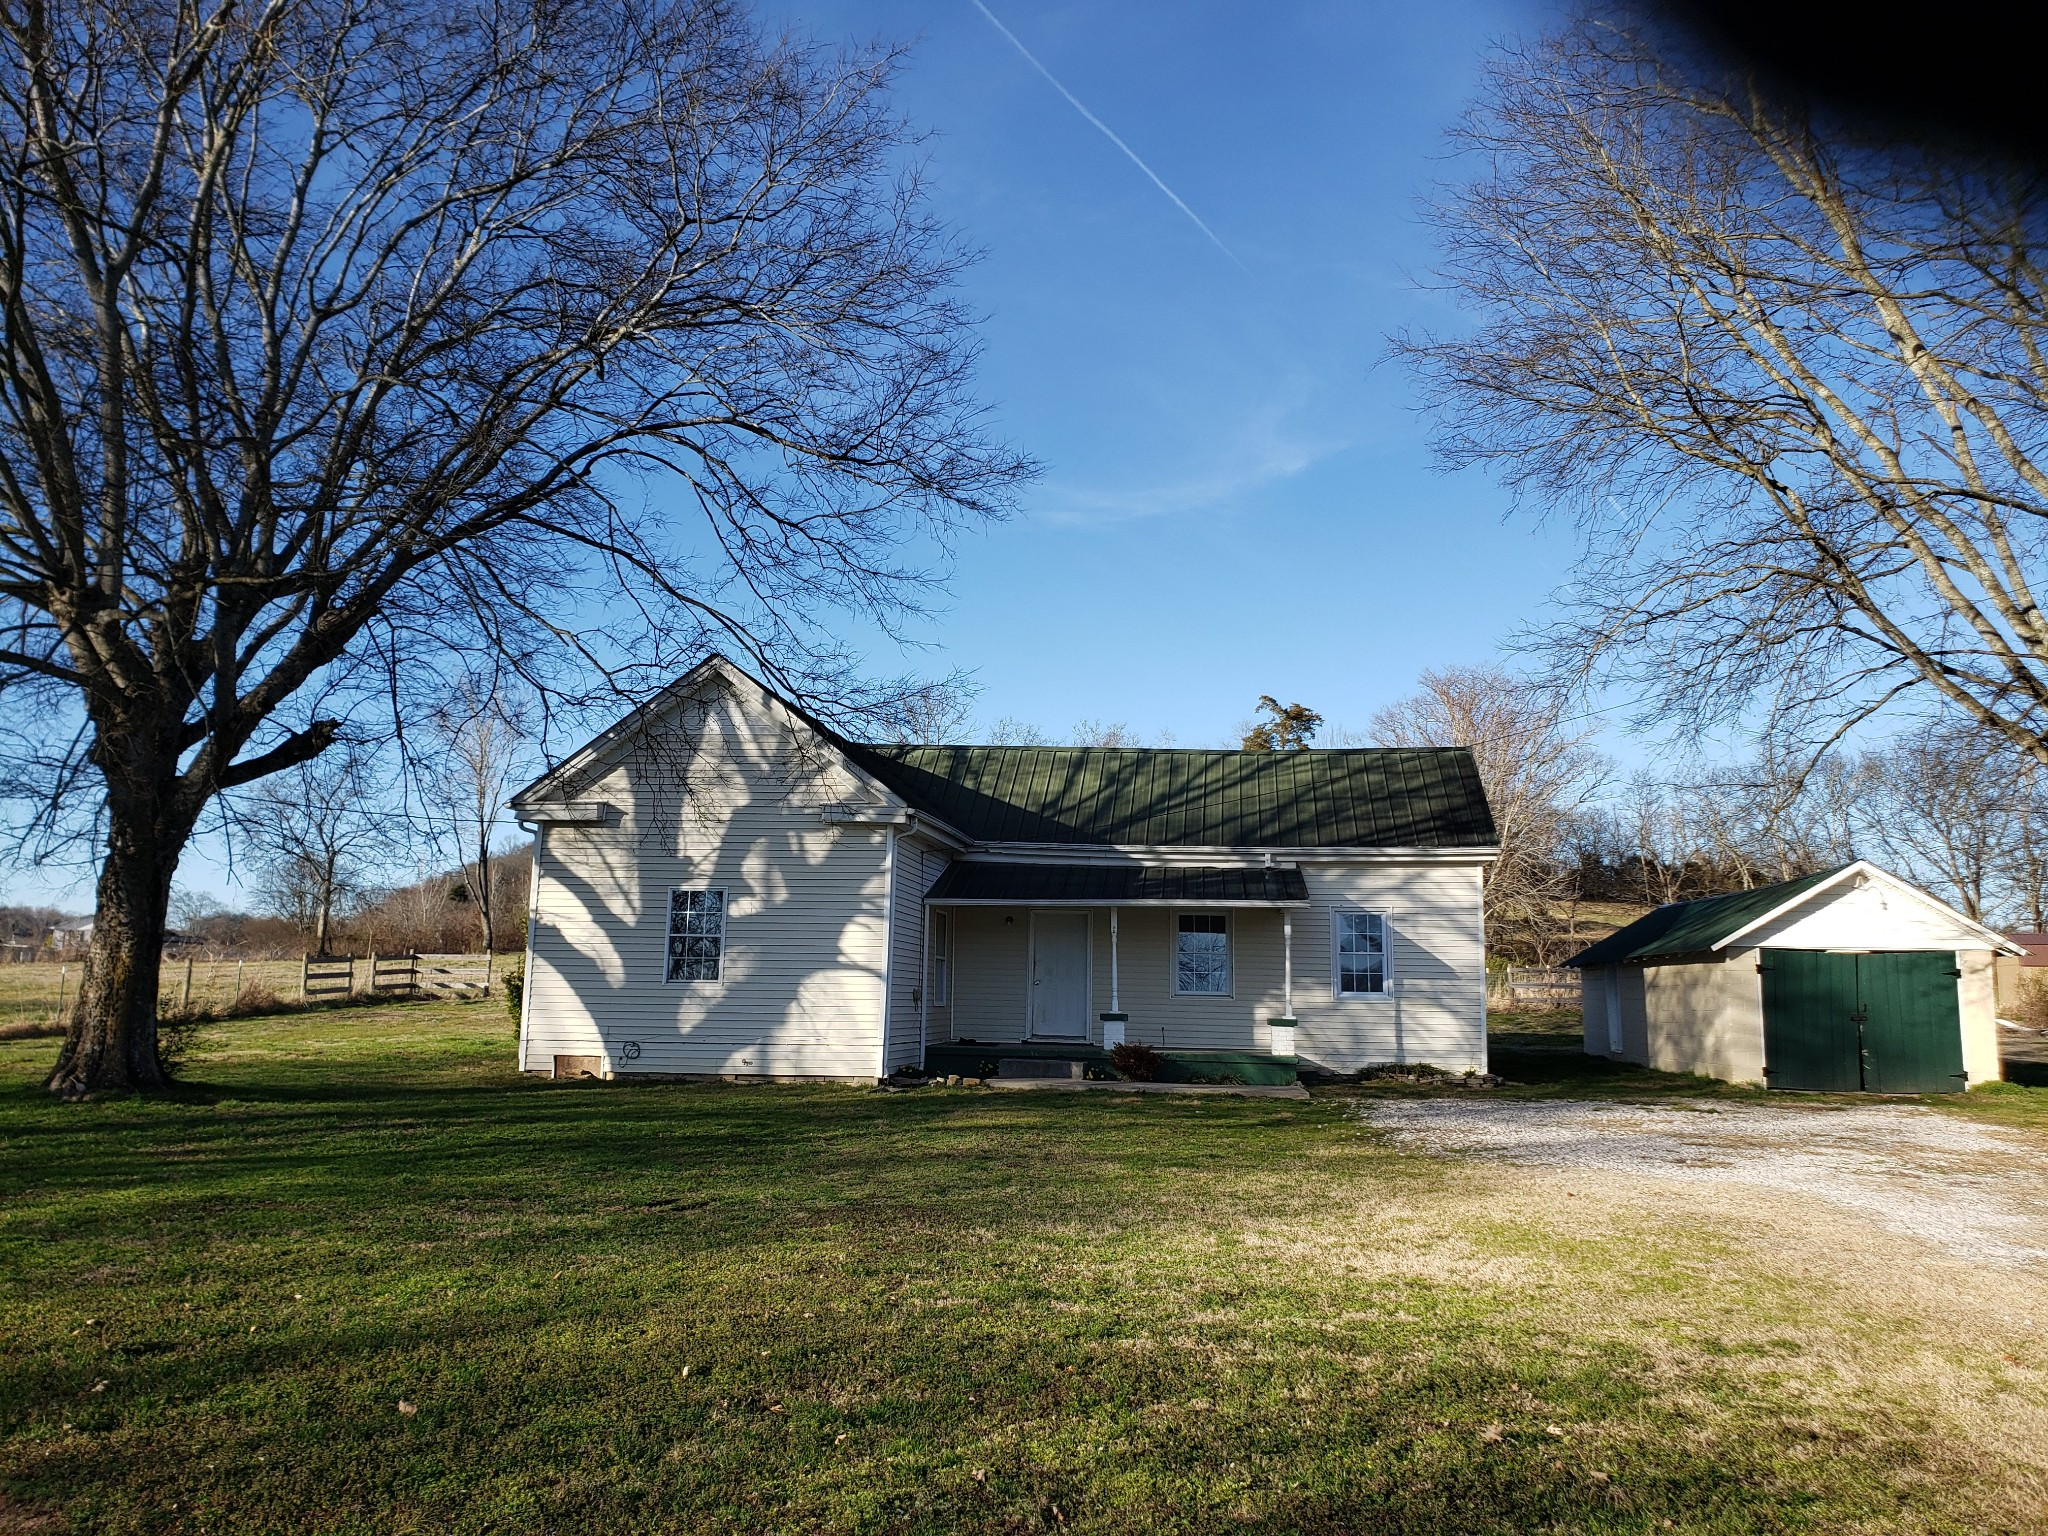 134 Fry Branch Rd, Lynnville, TN 38472 - Lynnville, TN real estate listing